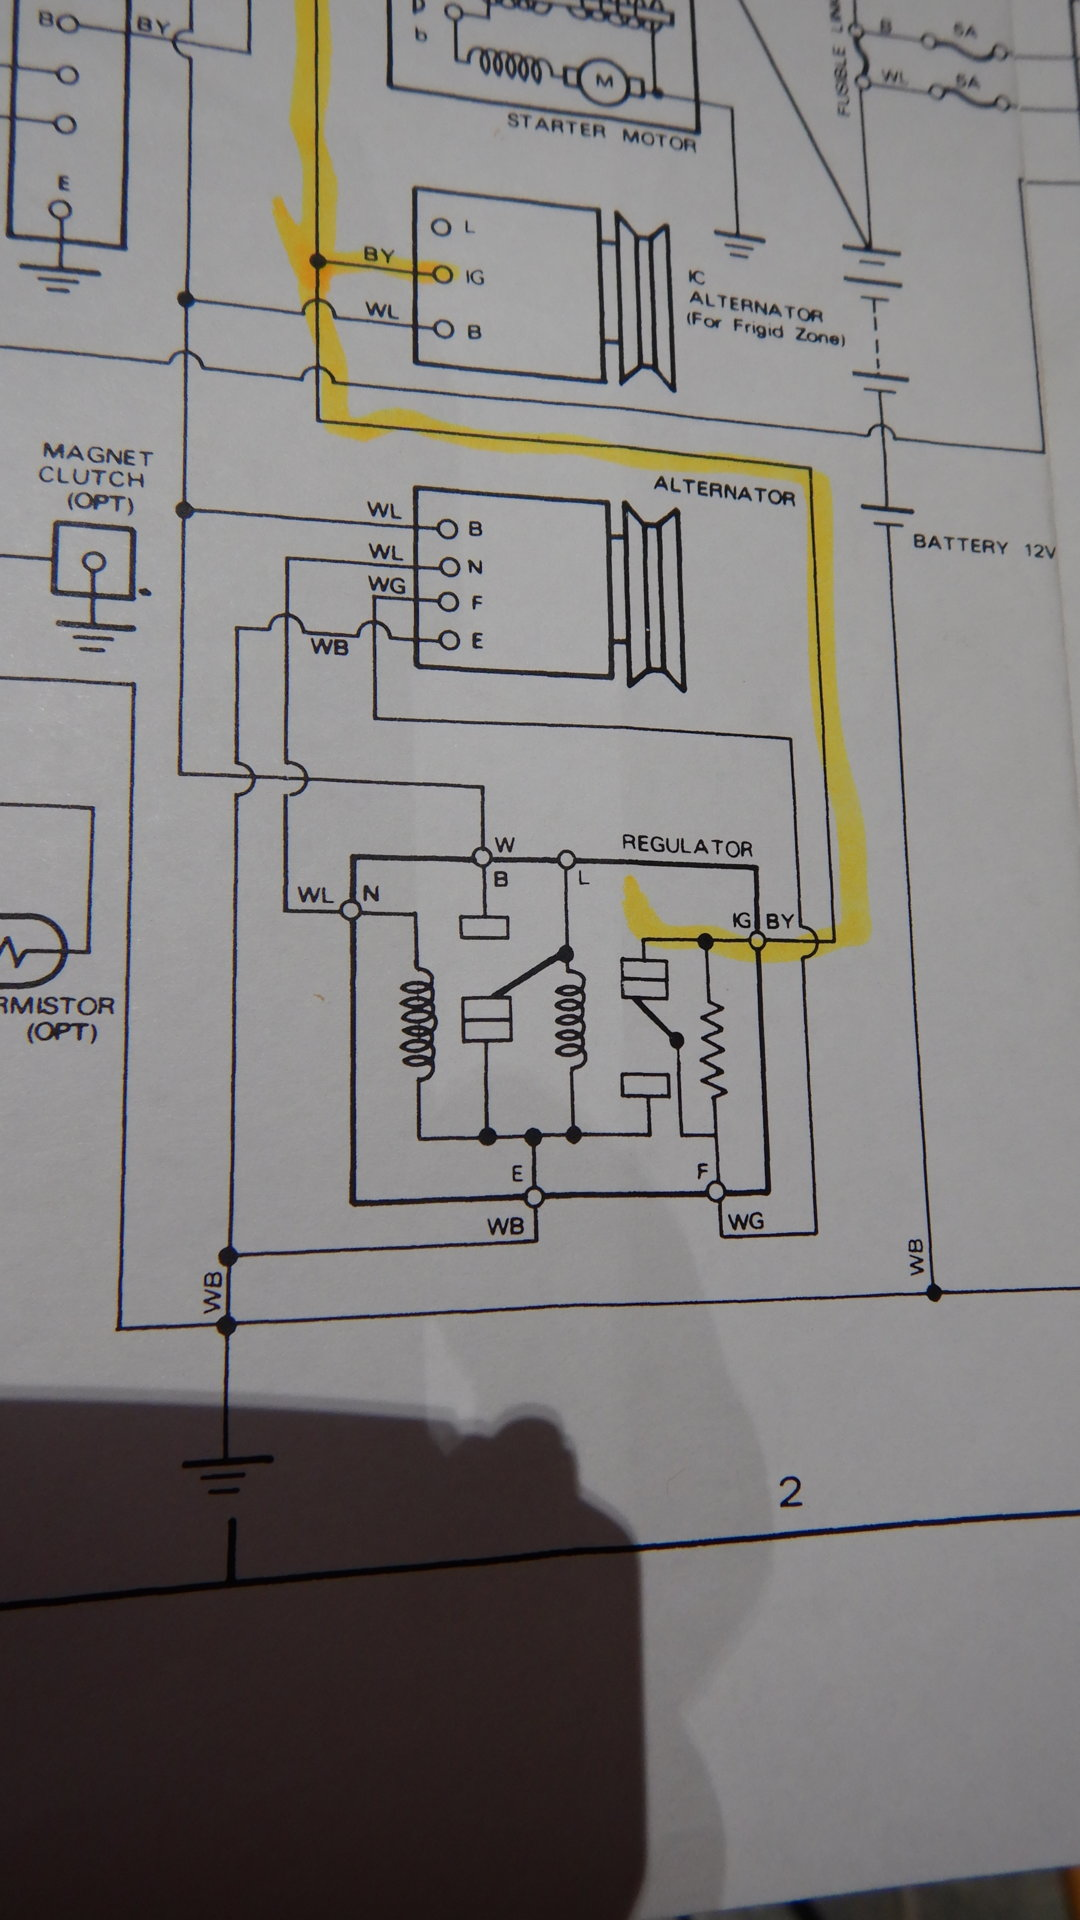 6 pin voltage regulator wiring help | Page 2 | IH8MUD Forum | Vr600 Voltage Regulator Wiring Diagram |  | IH8MUD Forum